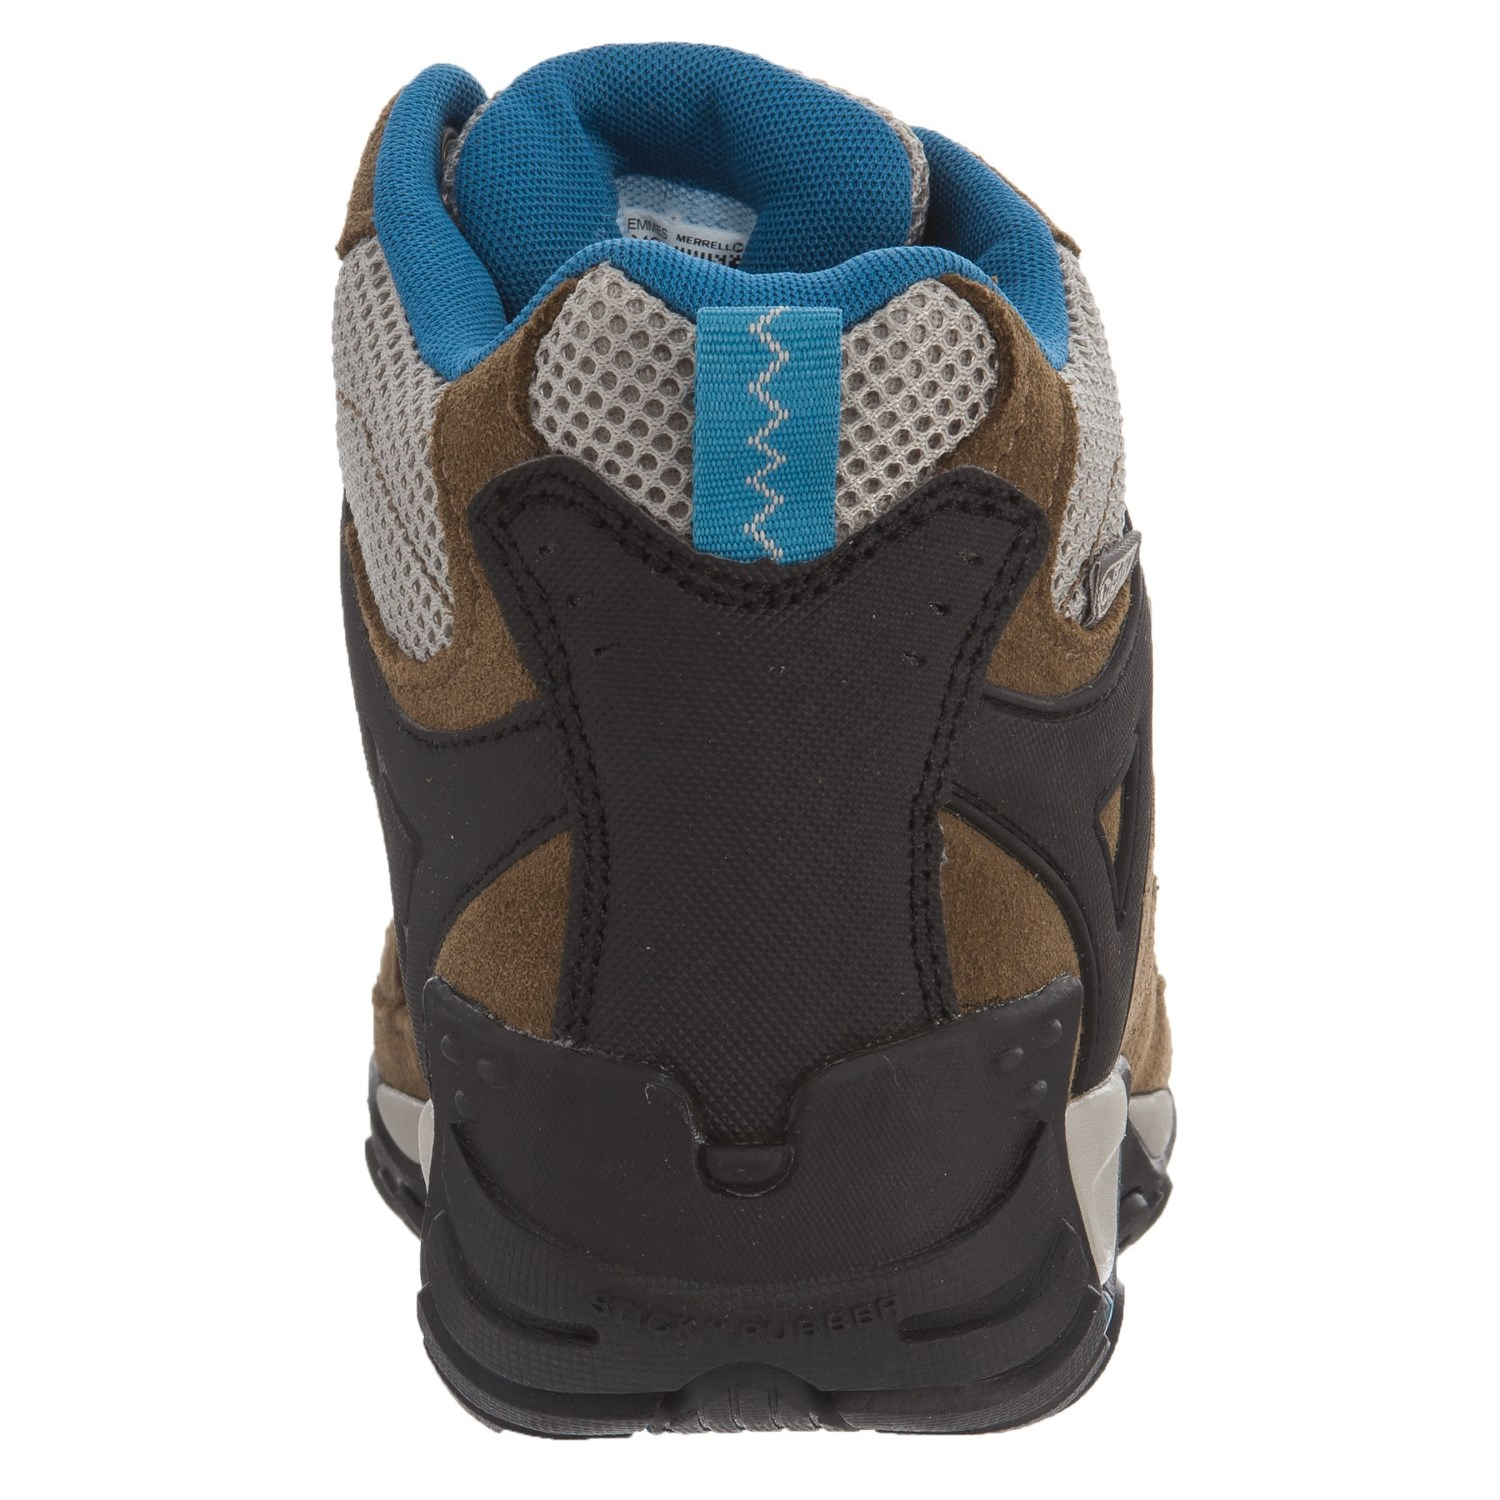 99a557a4 Merrell Accentor Mid Vent Hiking Boots - Waterproof (For Women)